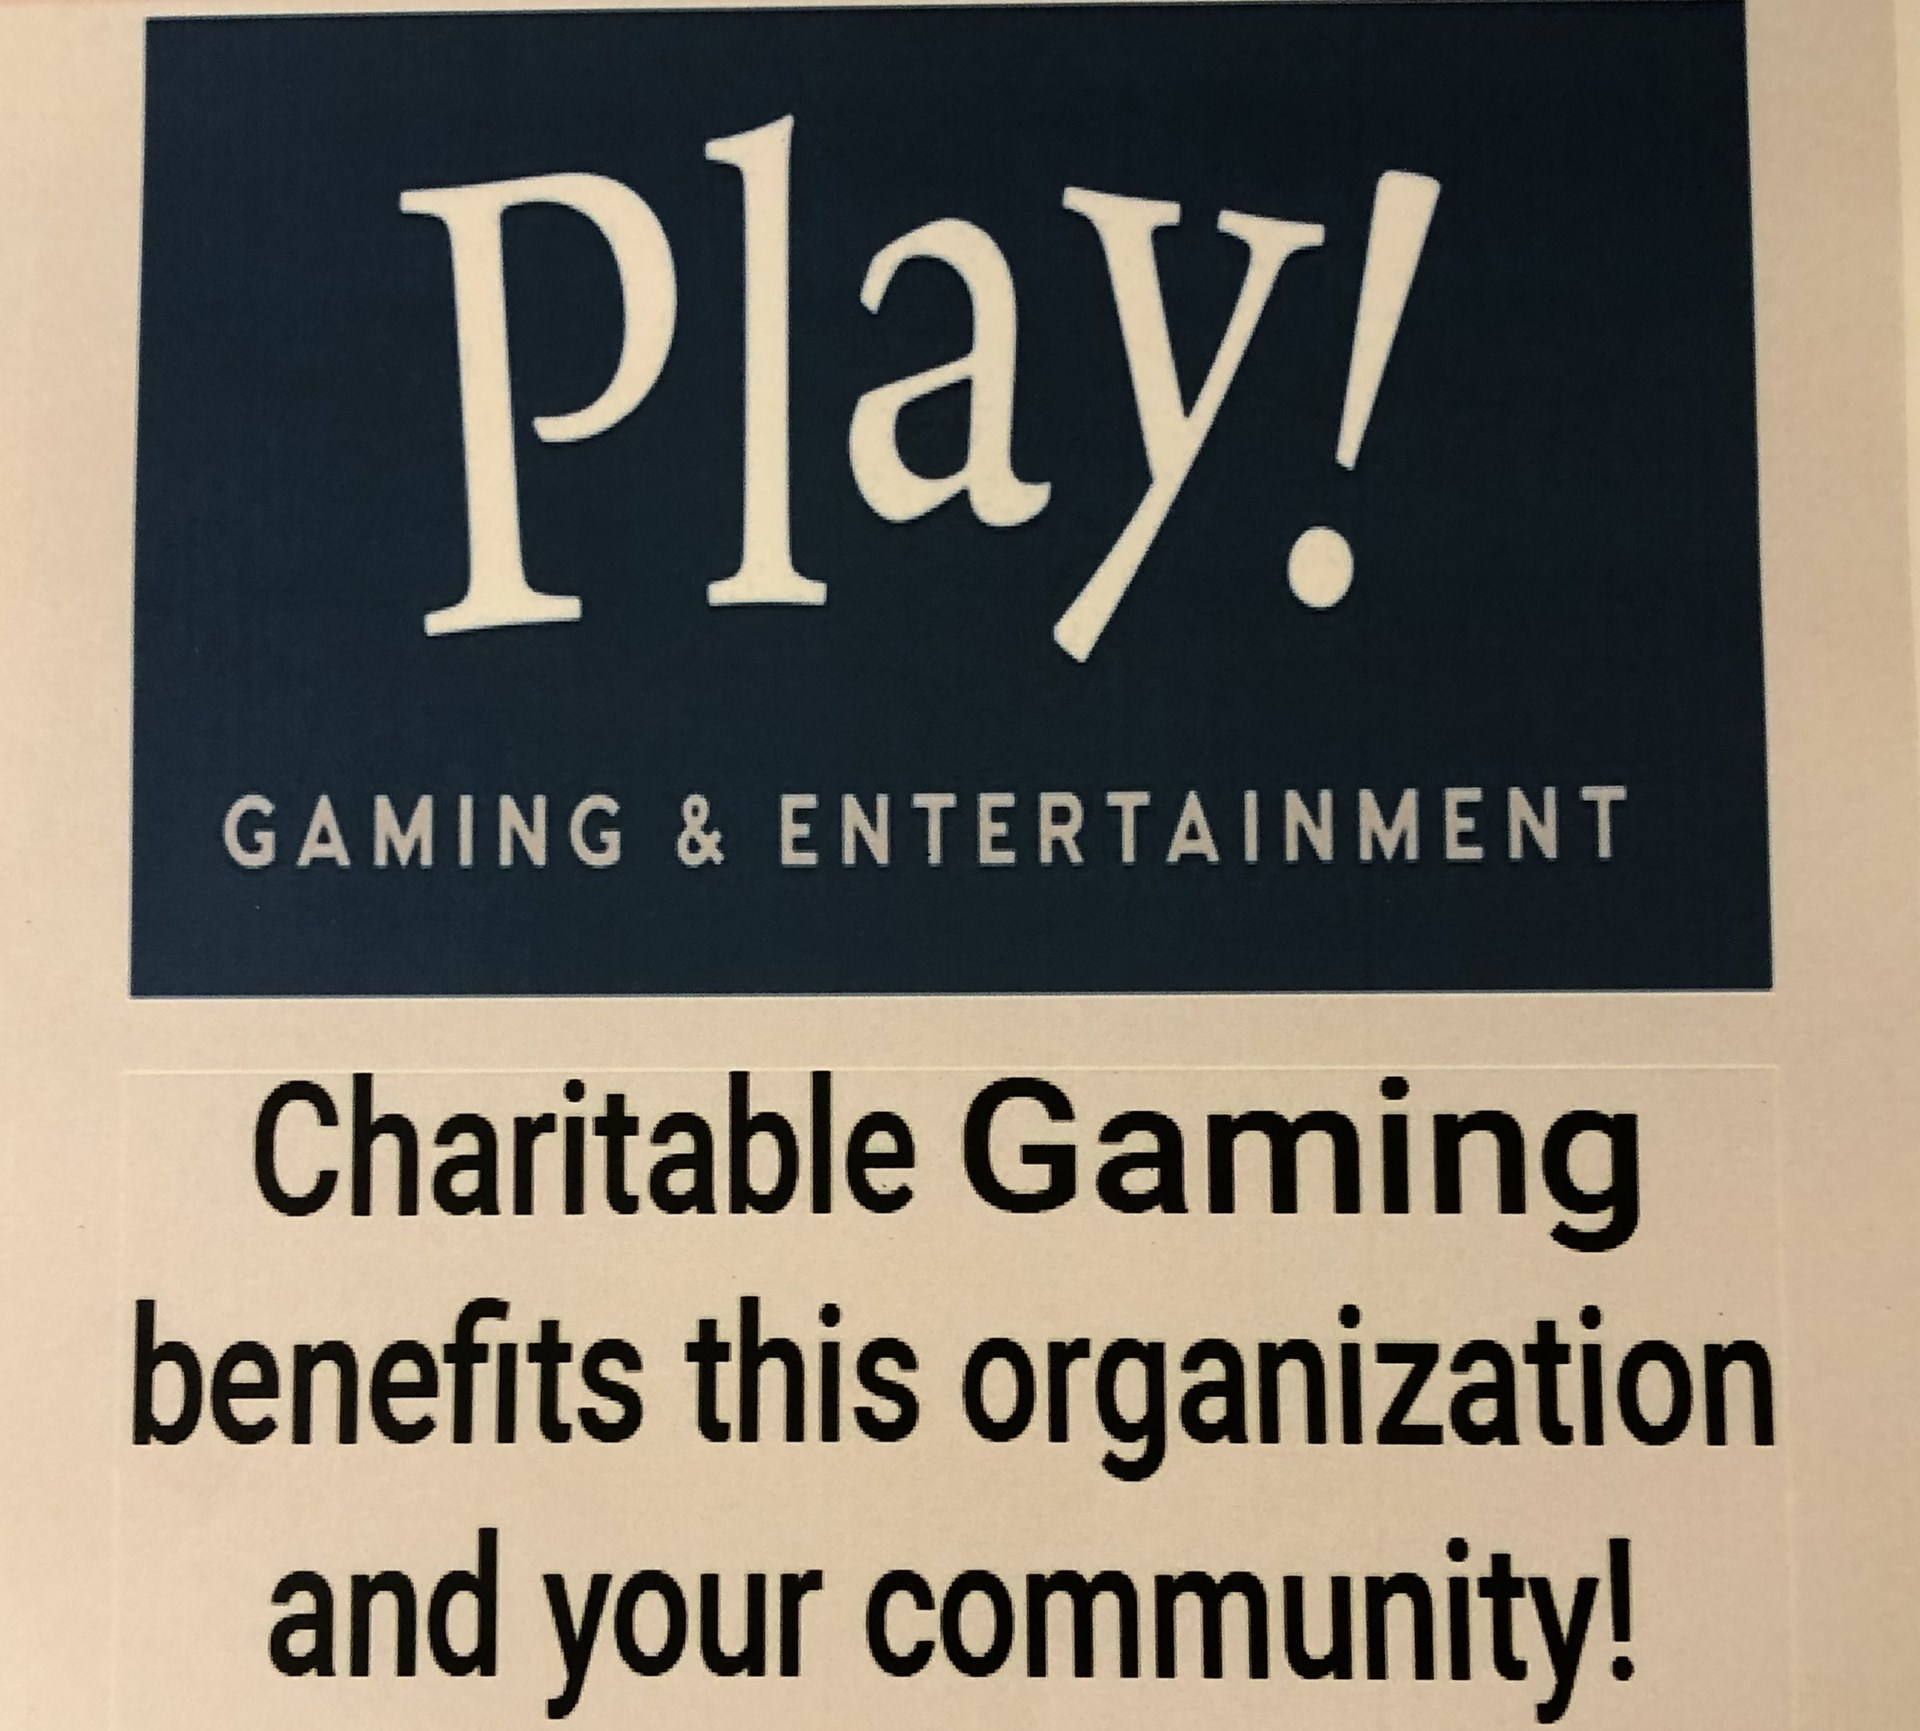 Play! Gaming & Entertainment